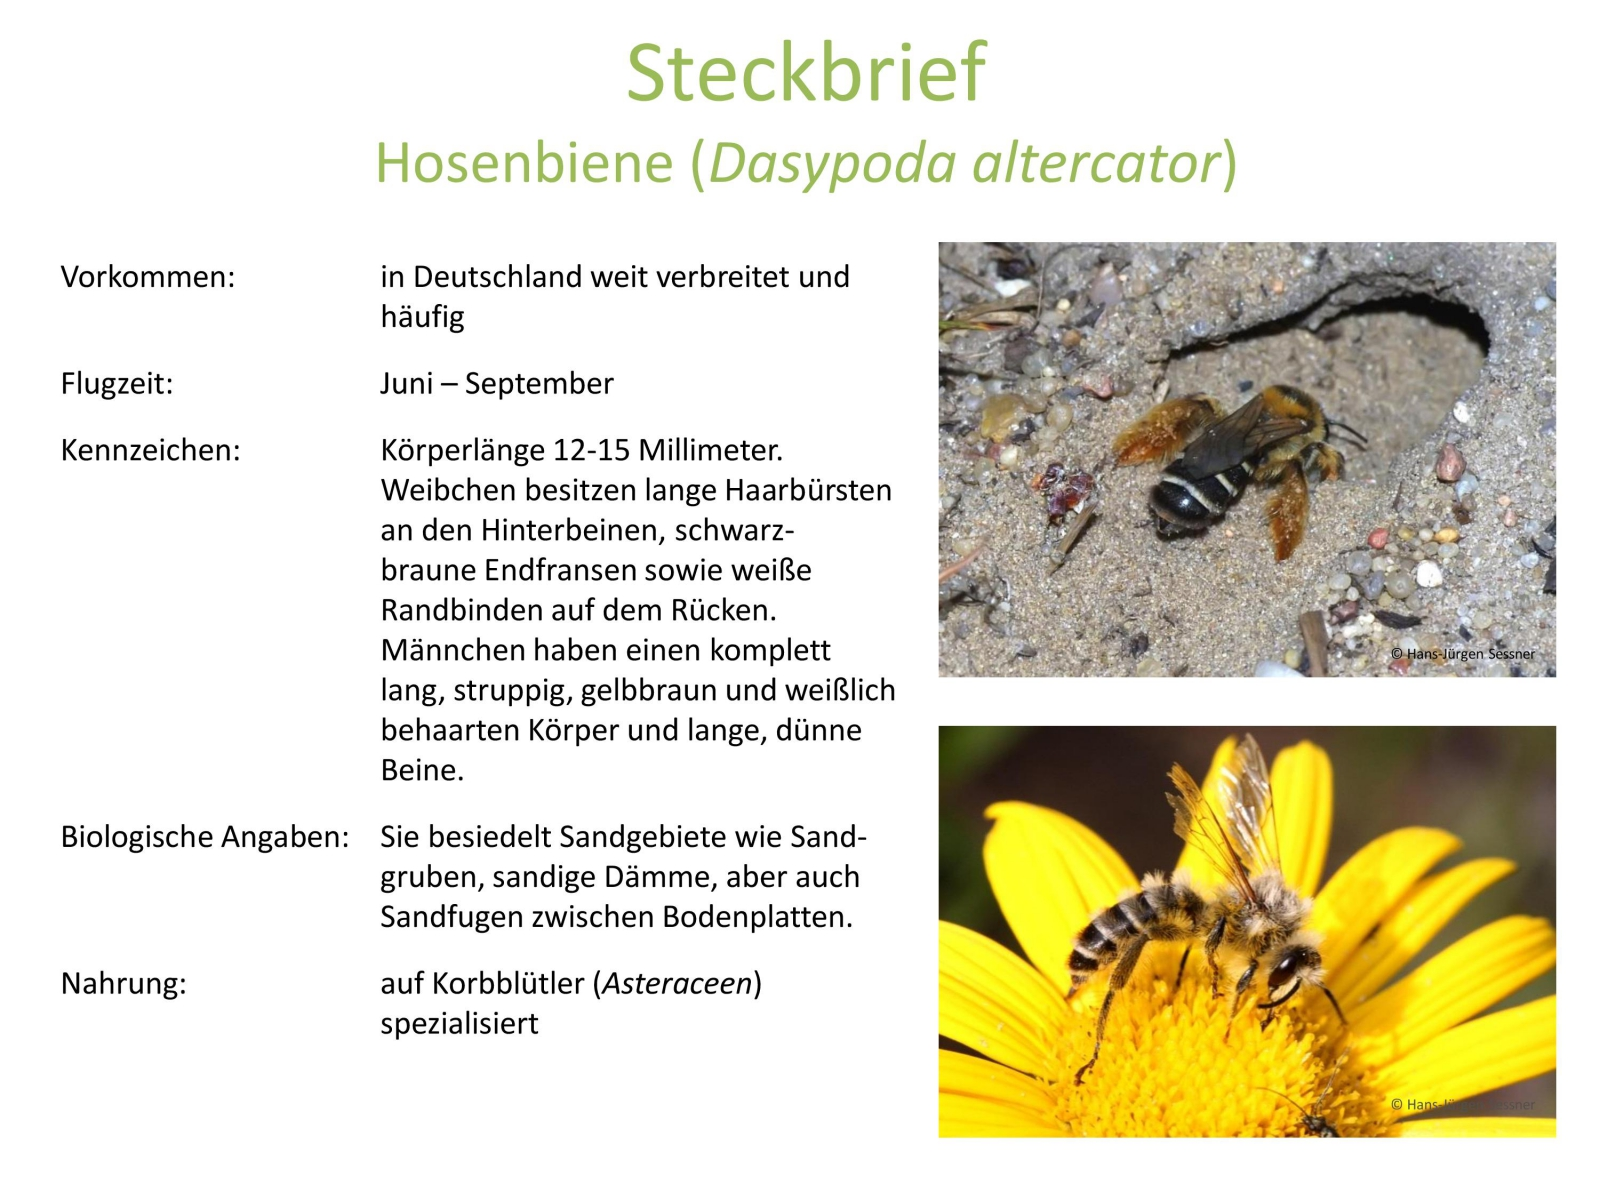 wildbienen_steckbrief_4.jpg